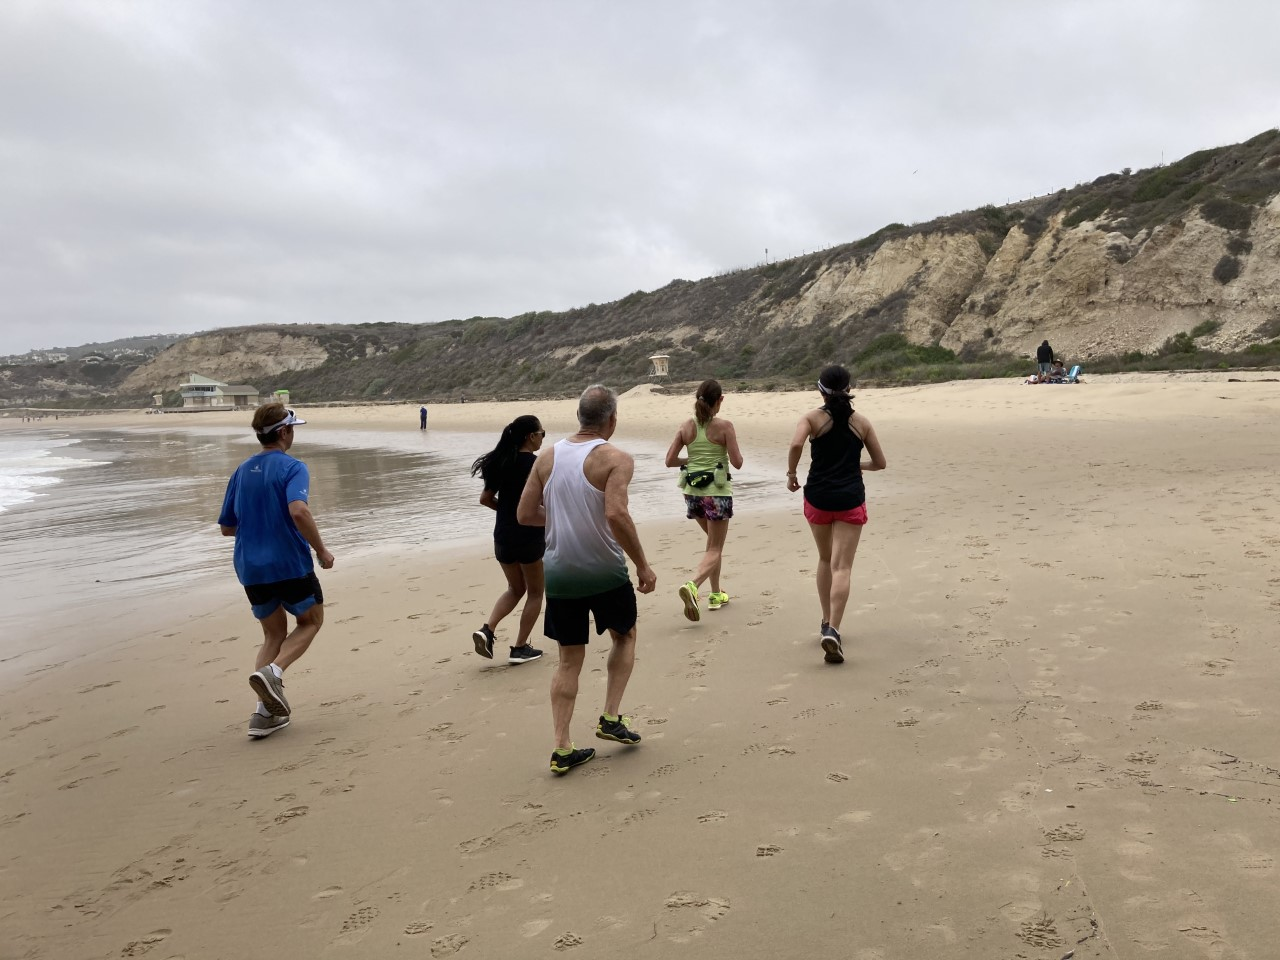 Runners running on the sand in Crystal Cove